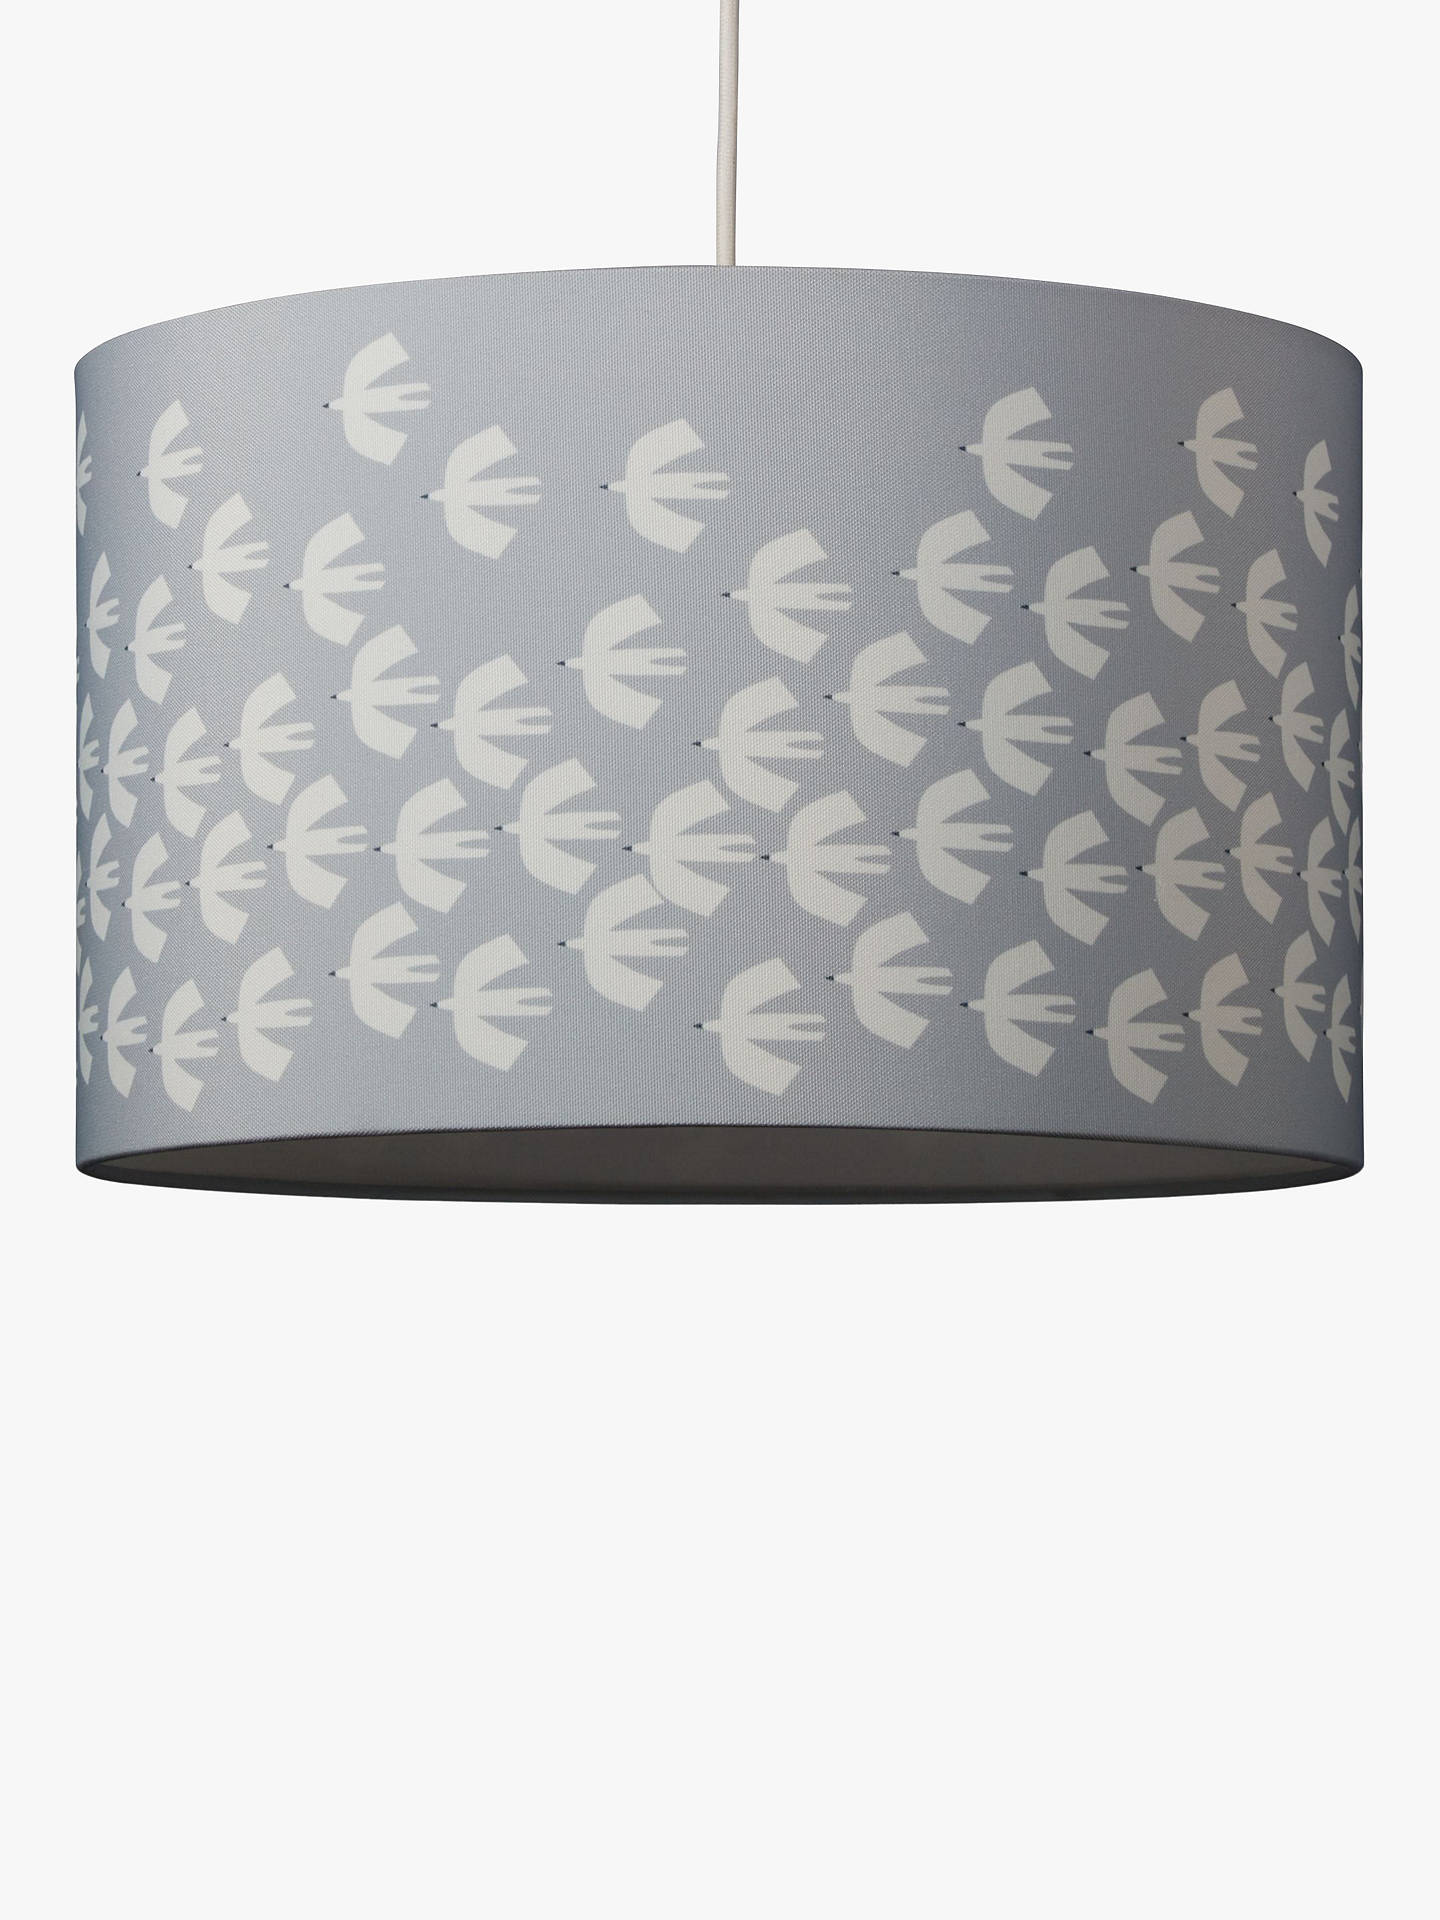 BuyScion Pajaro Lampshade, Grey/White, Dia.30cm Online at johnlewis.com